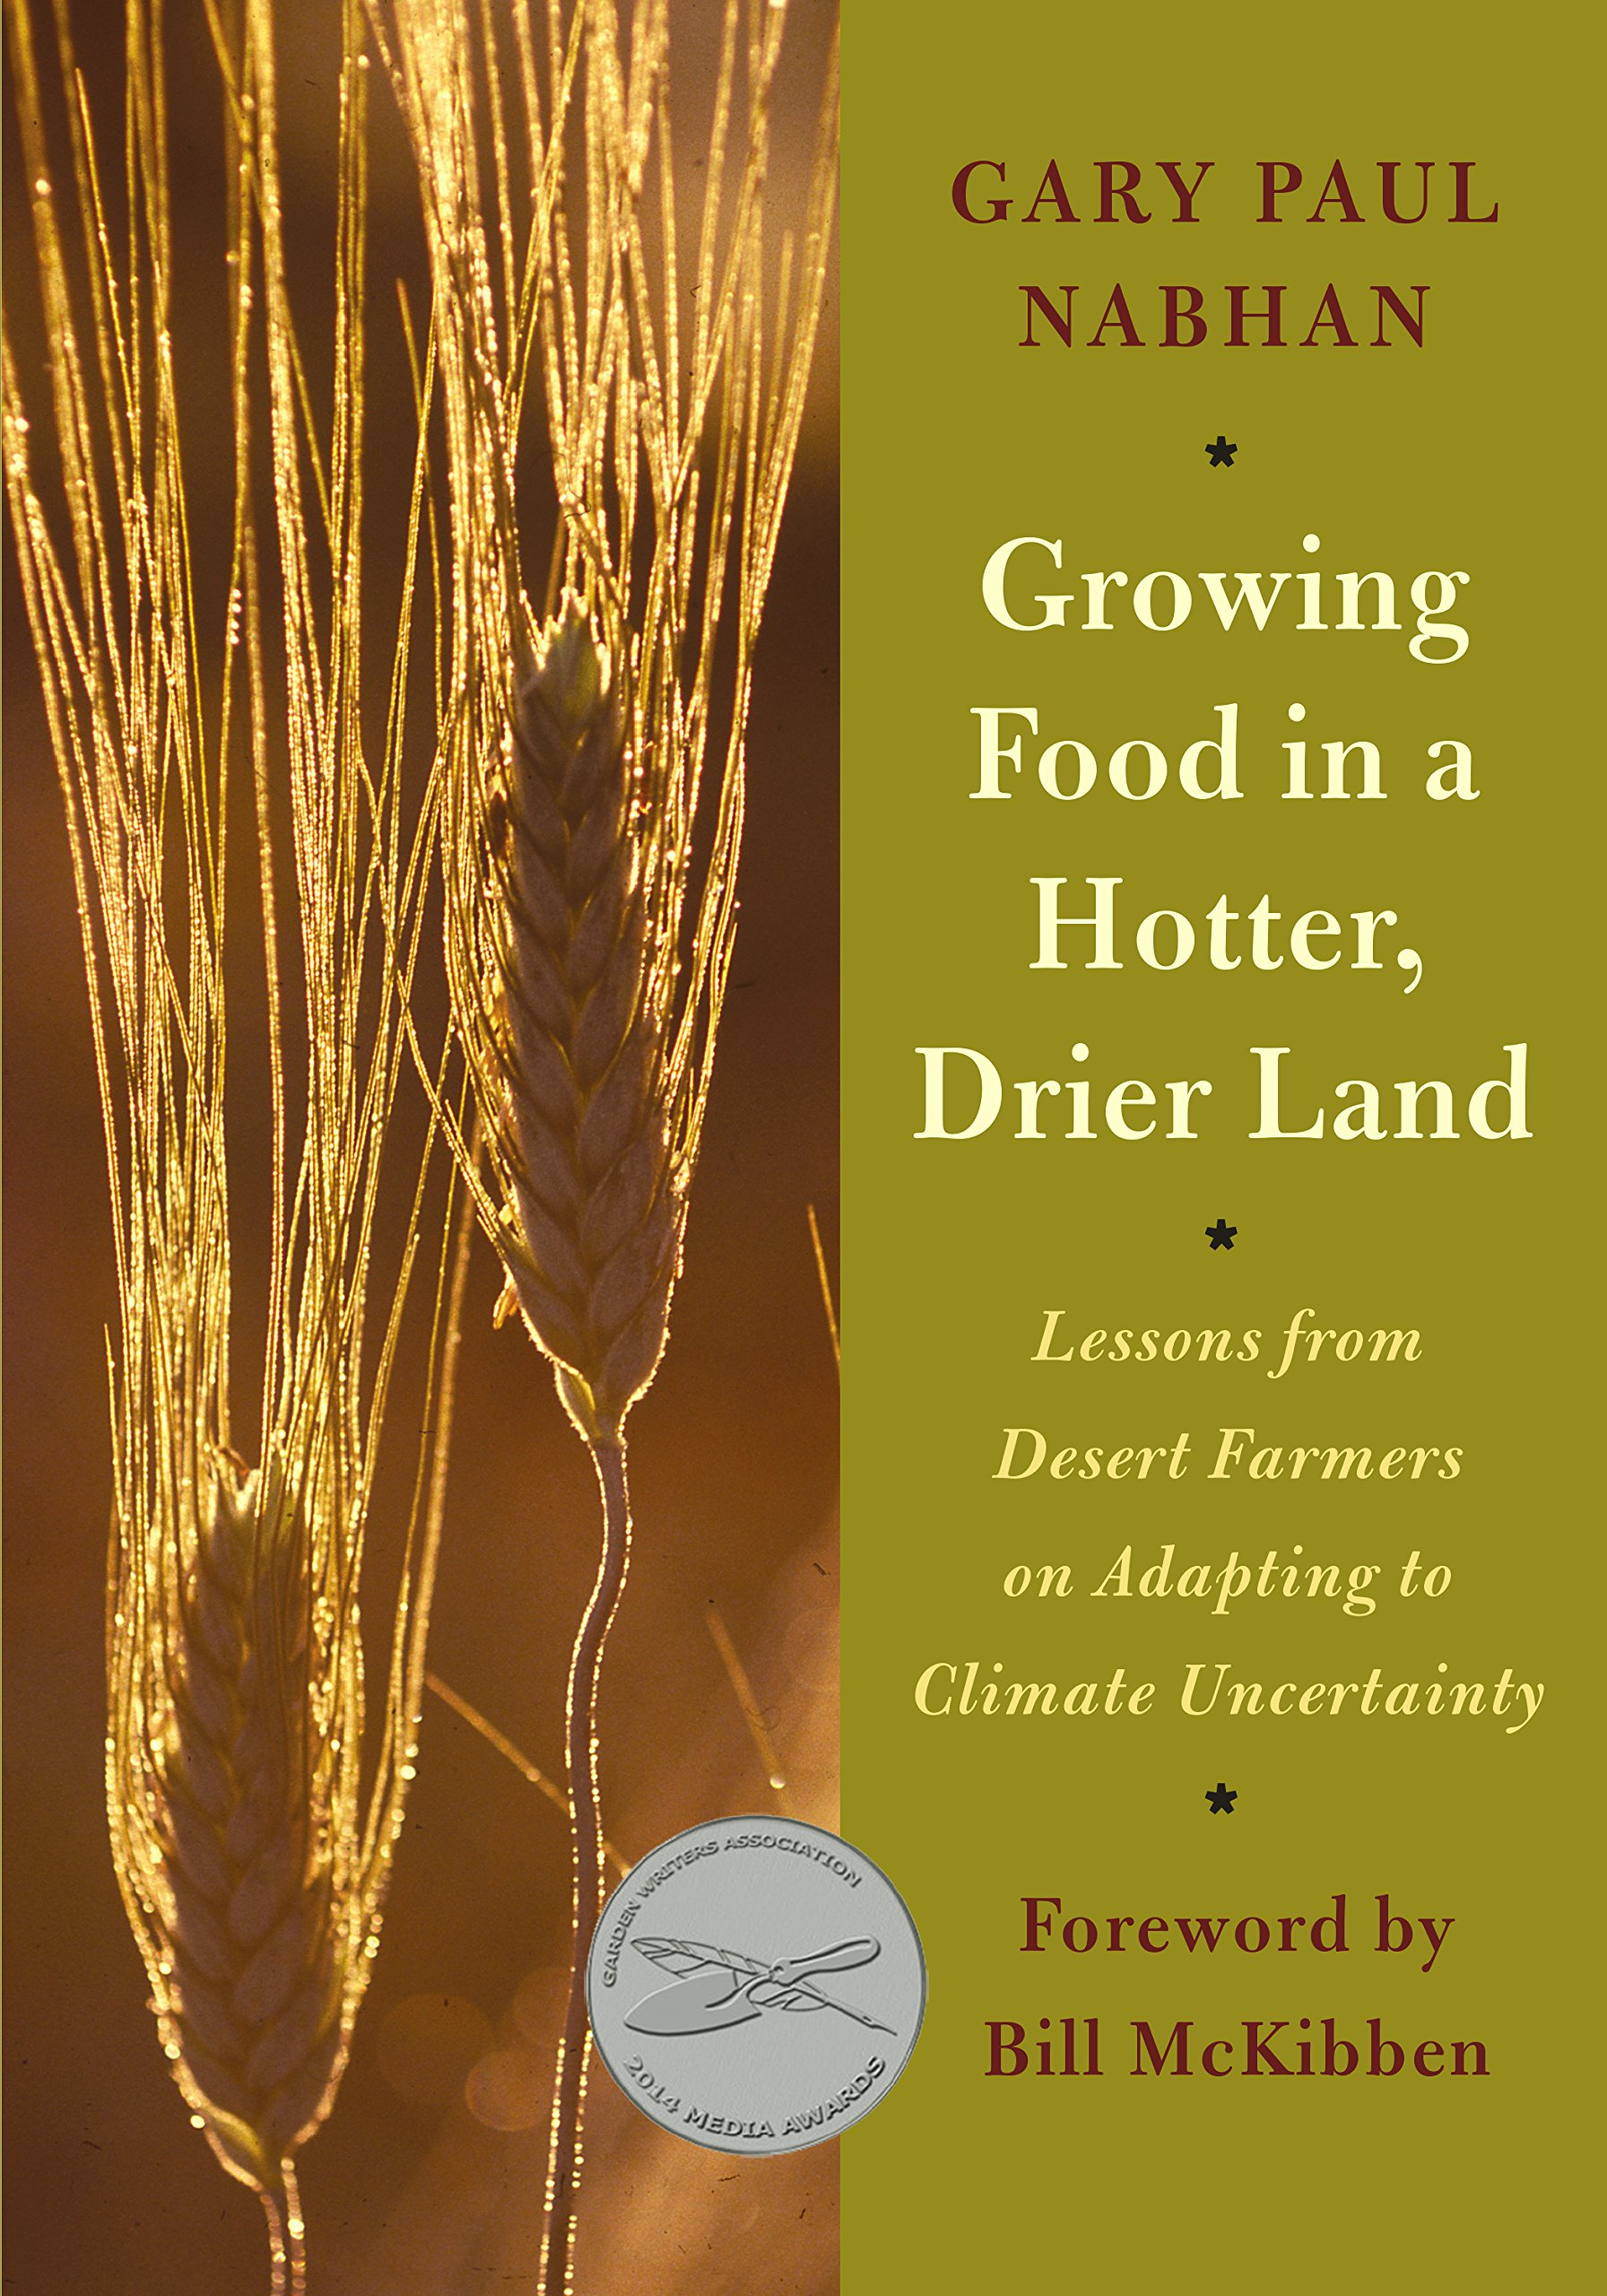 Growing Food in a Hotter, Drier Land: Lessons from Desert